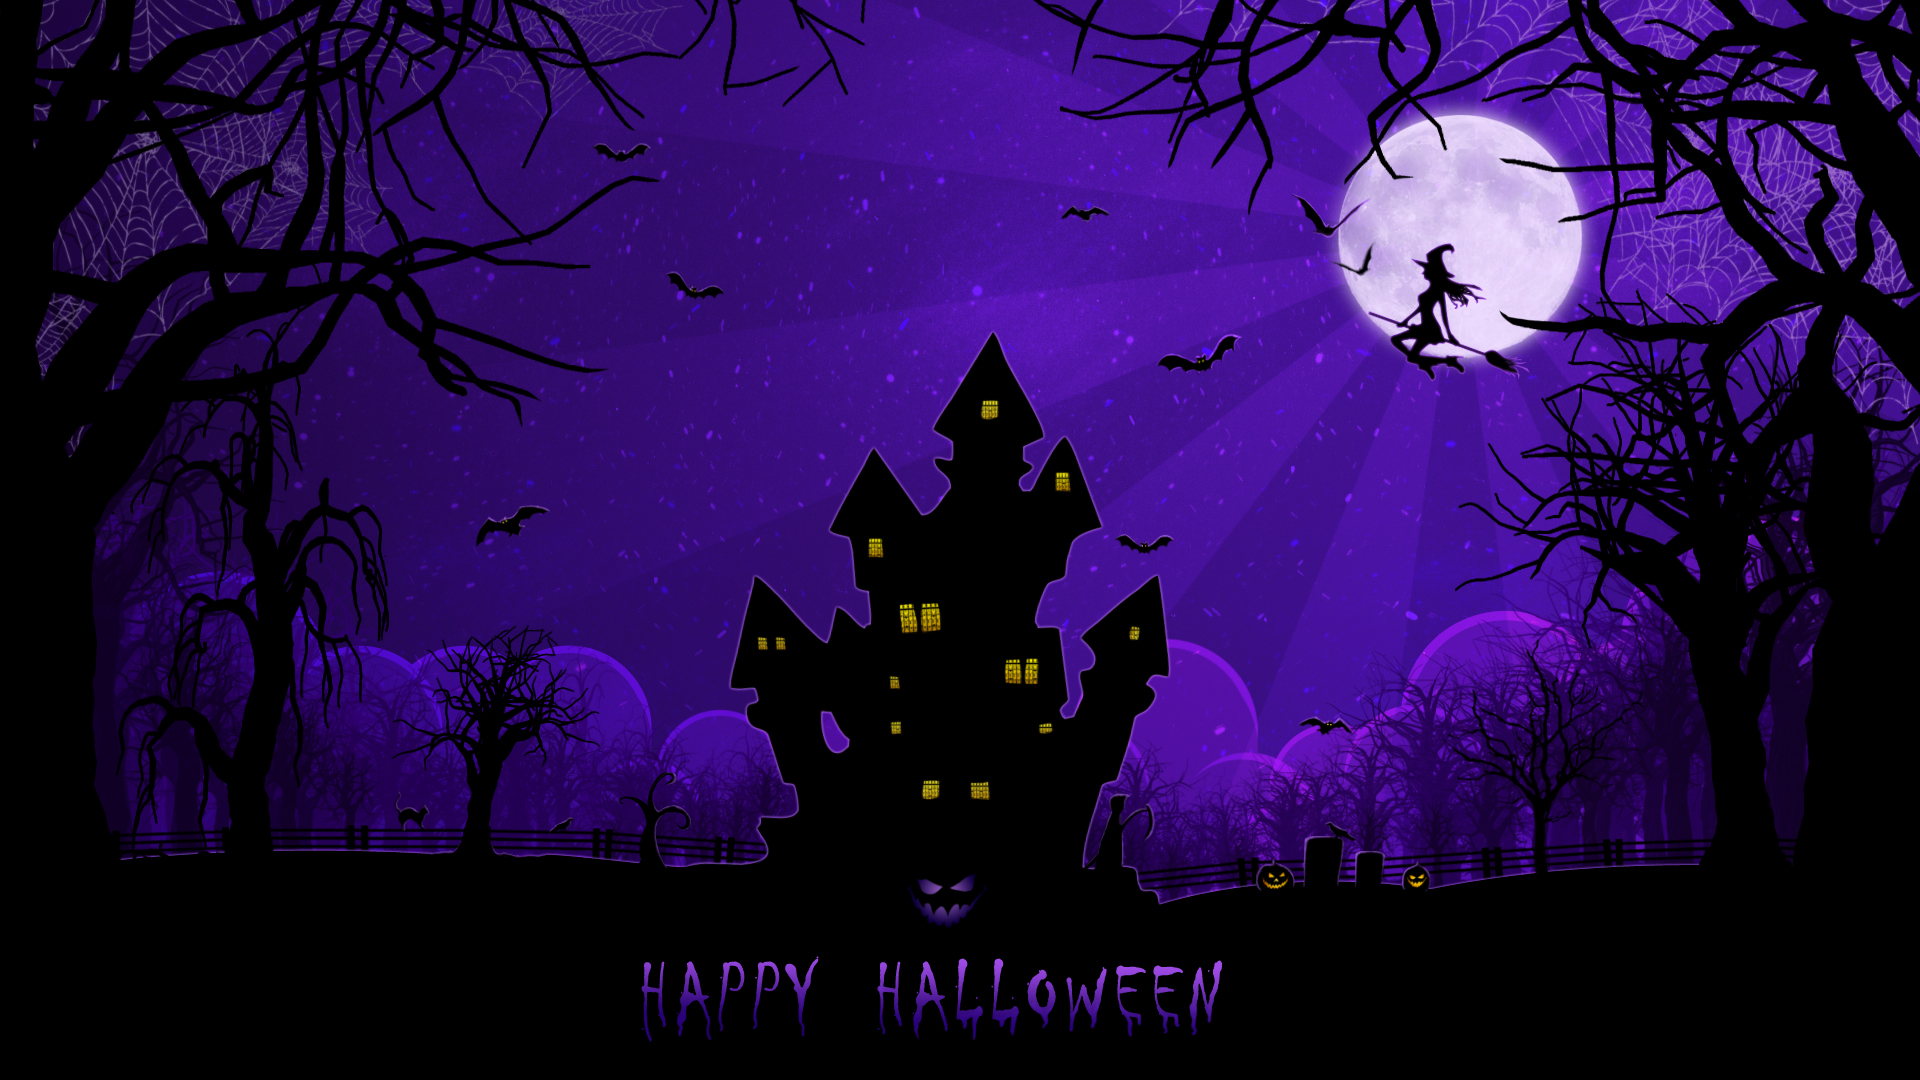 happy spooky halloween available in 19201080 - Creepy Halloween Wallpapers